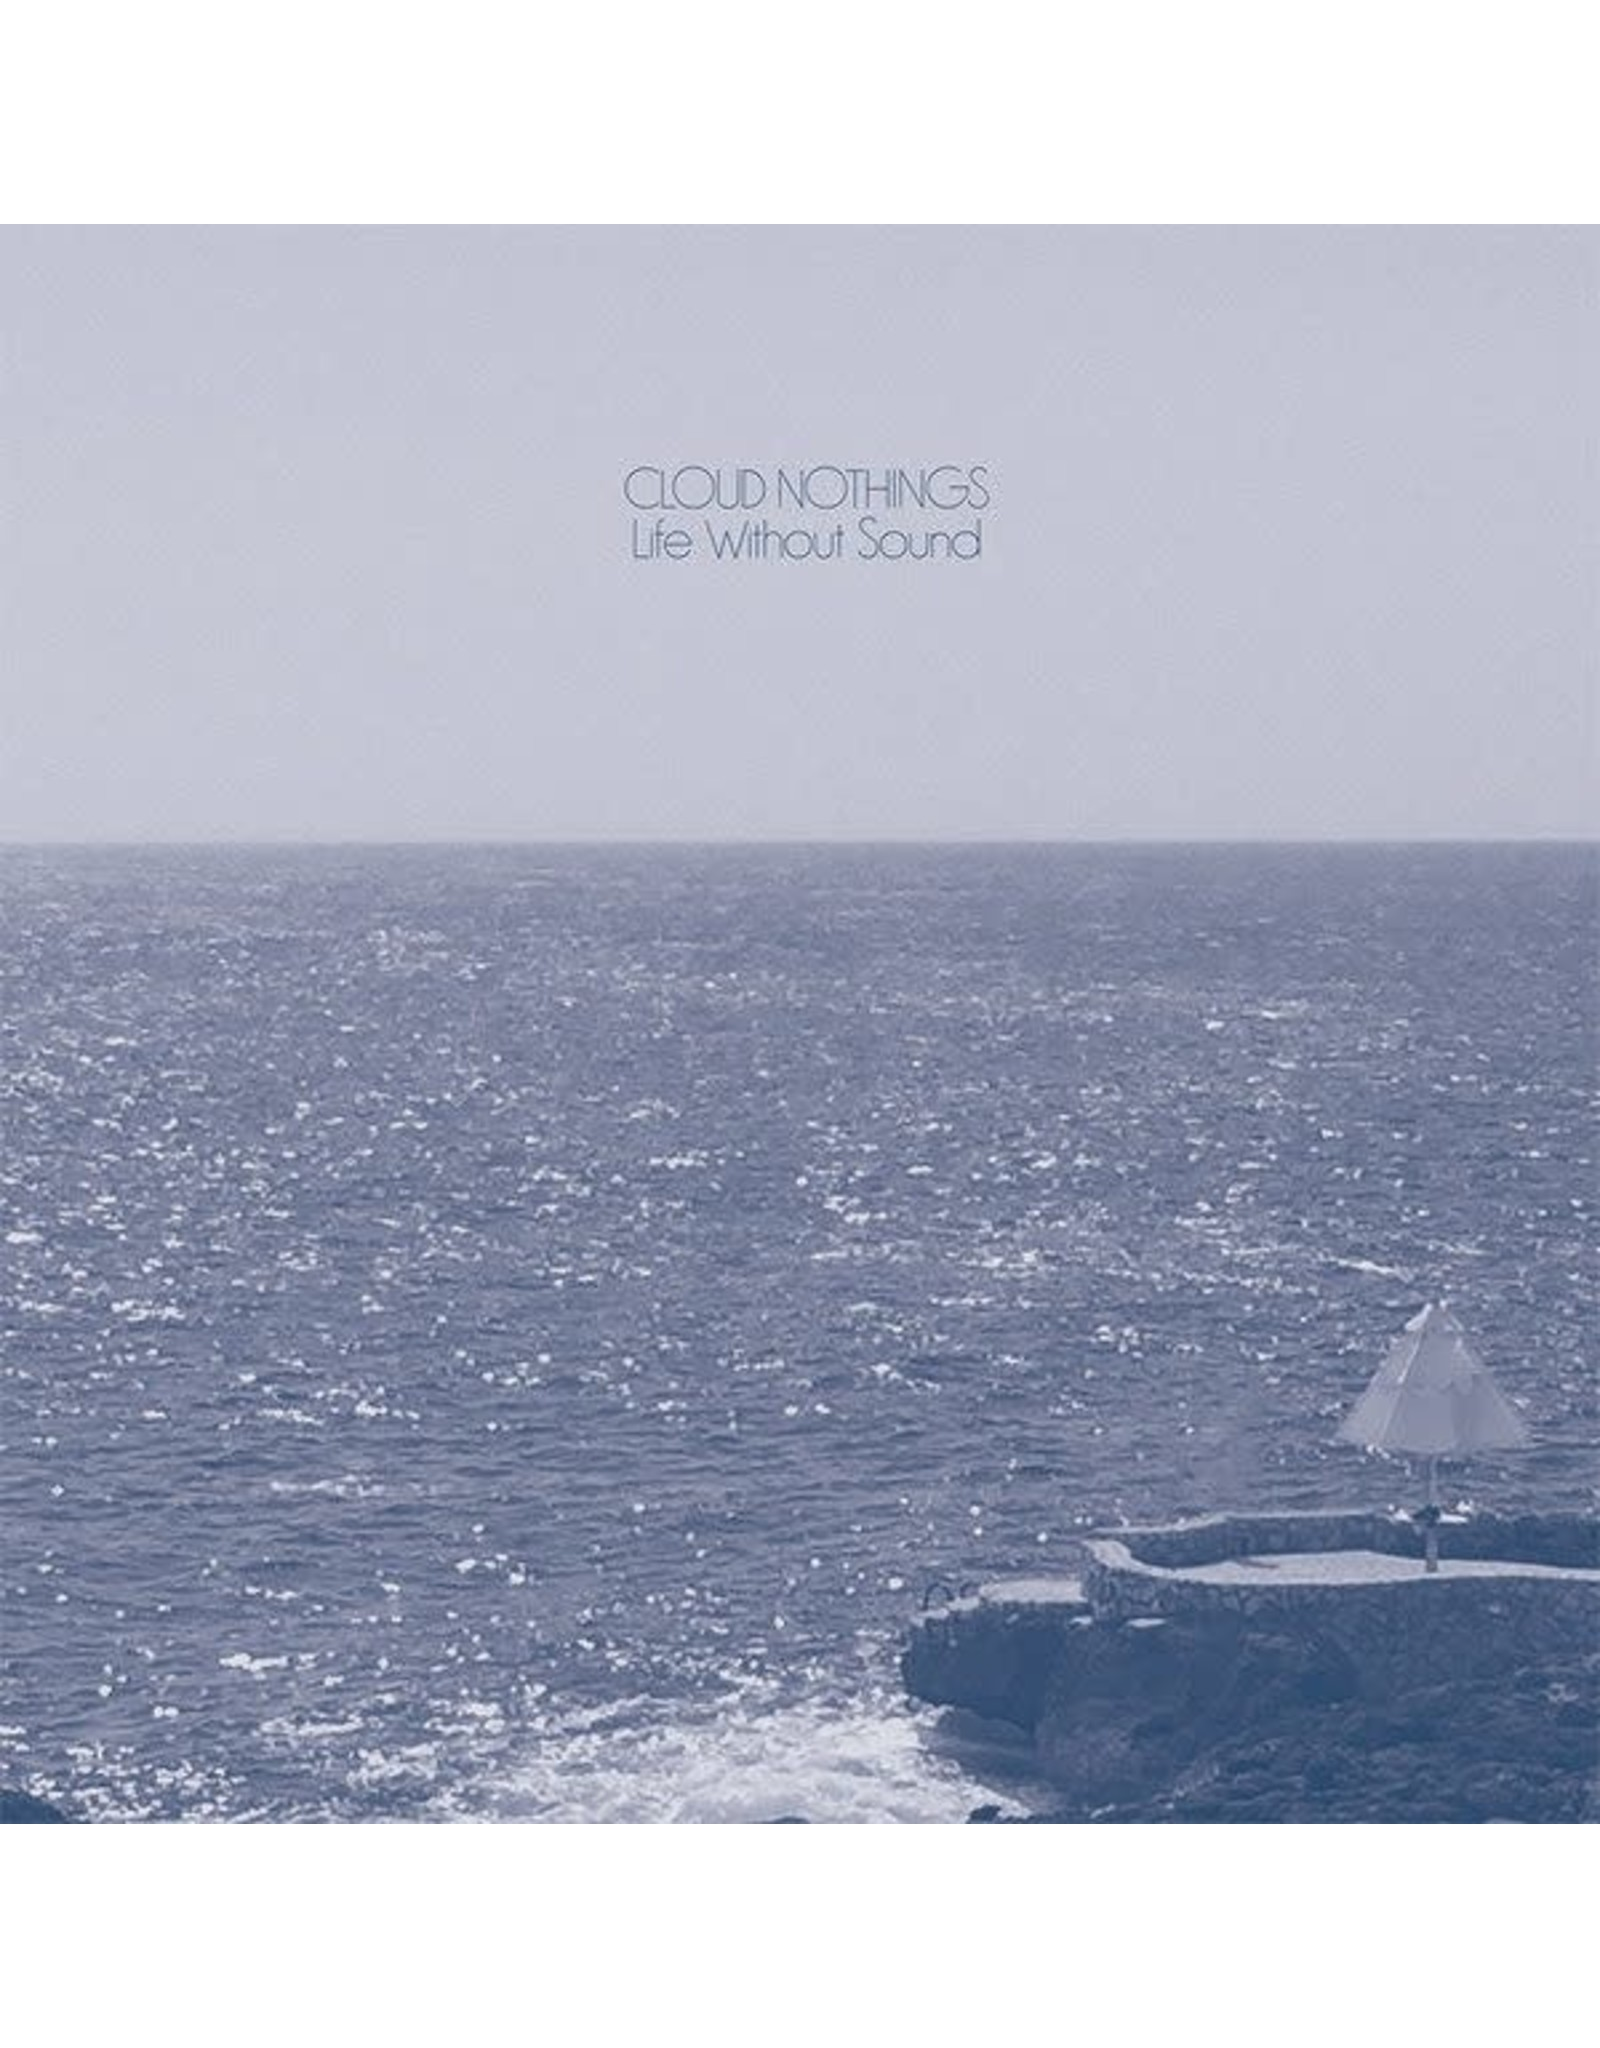 Cloud Nothings - Life Without Sound (Color Vinyl)